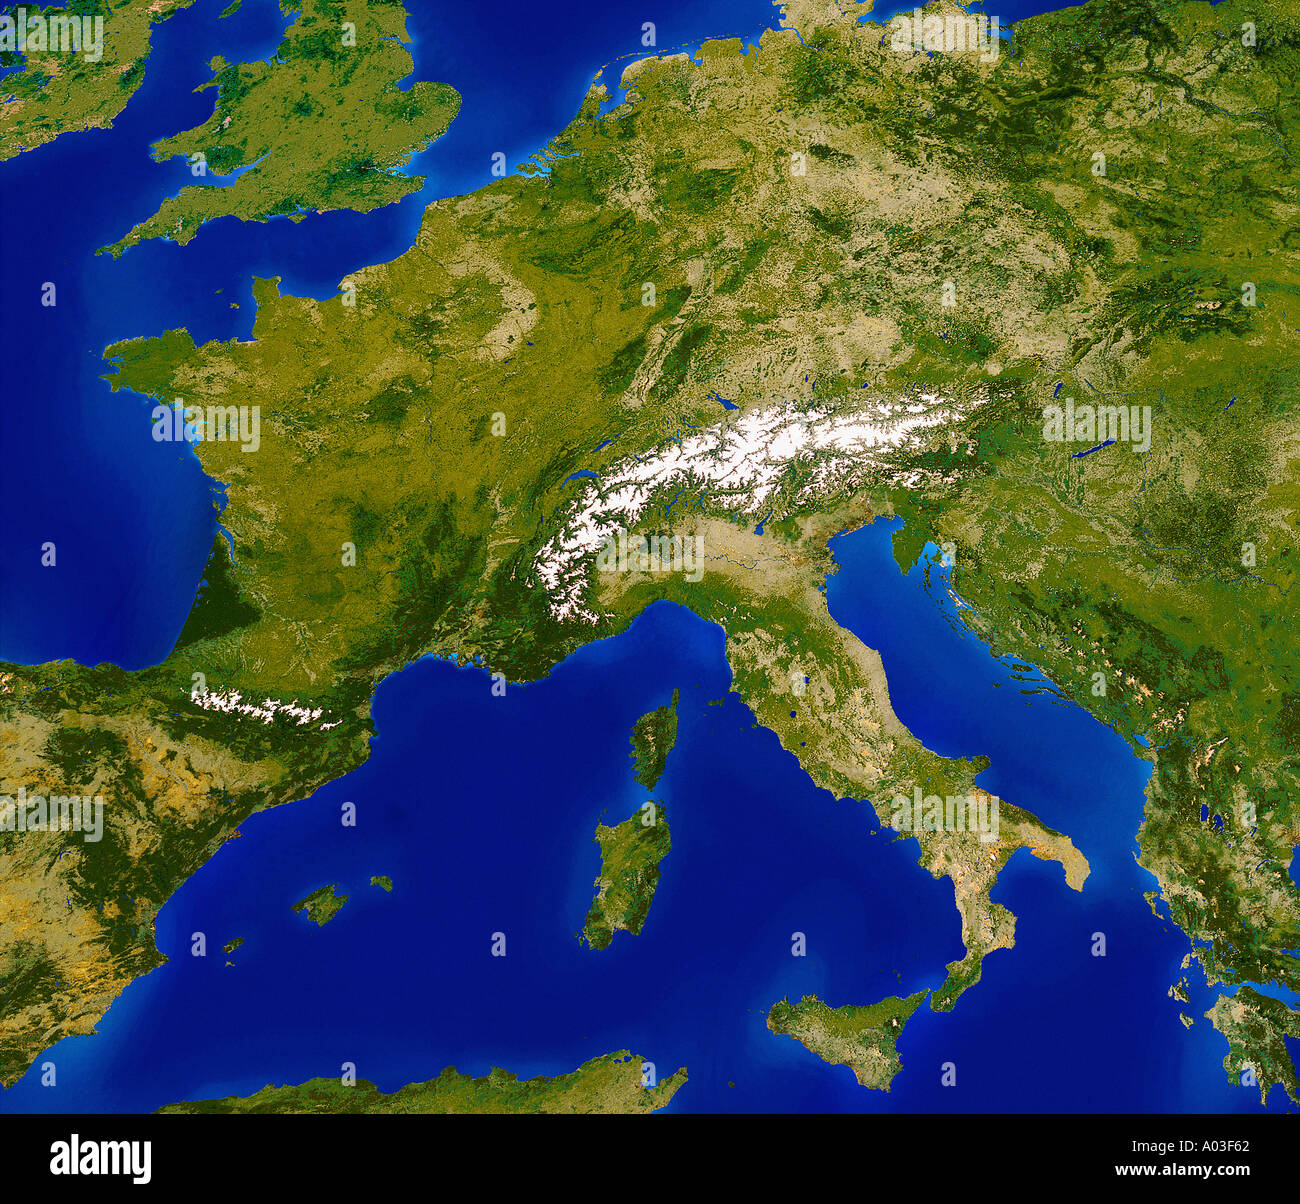 europe photographed from space from space by satellite - Stock Image